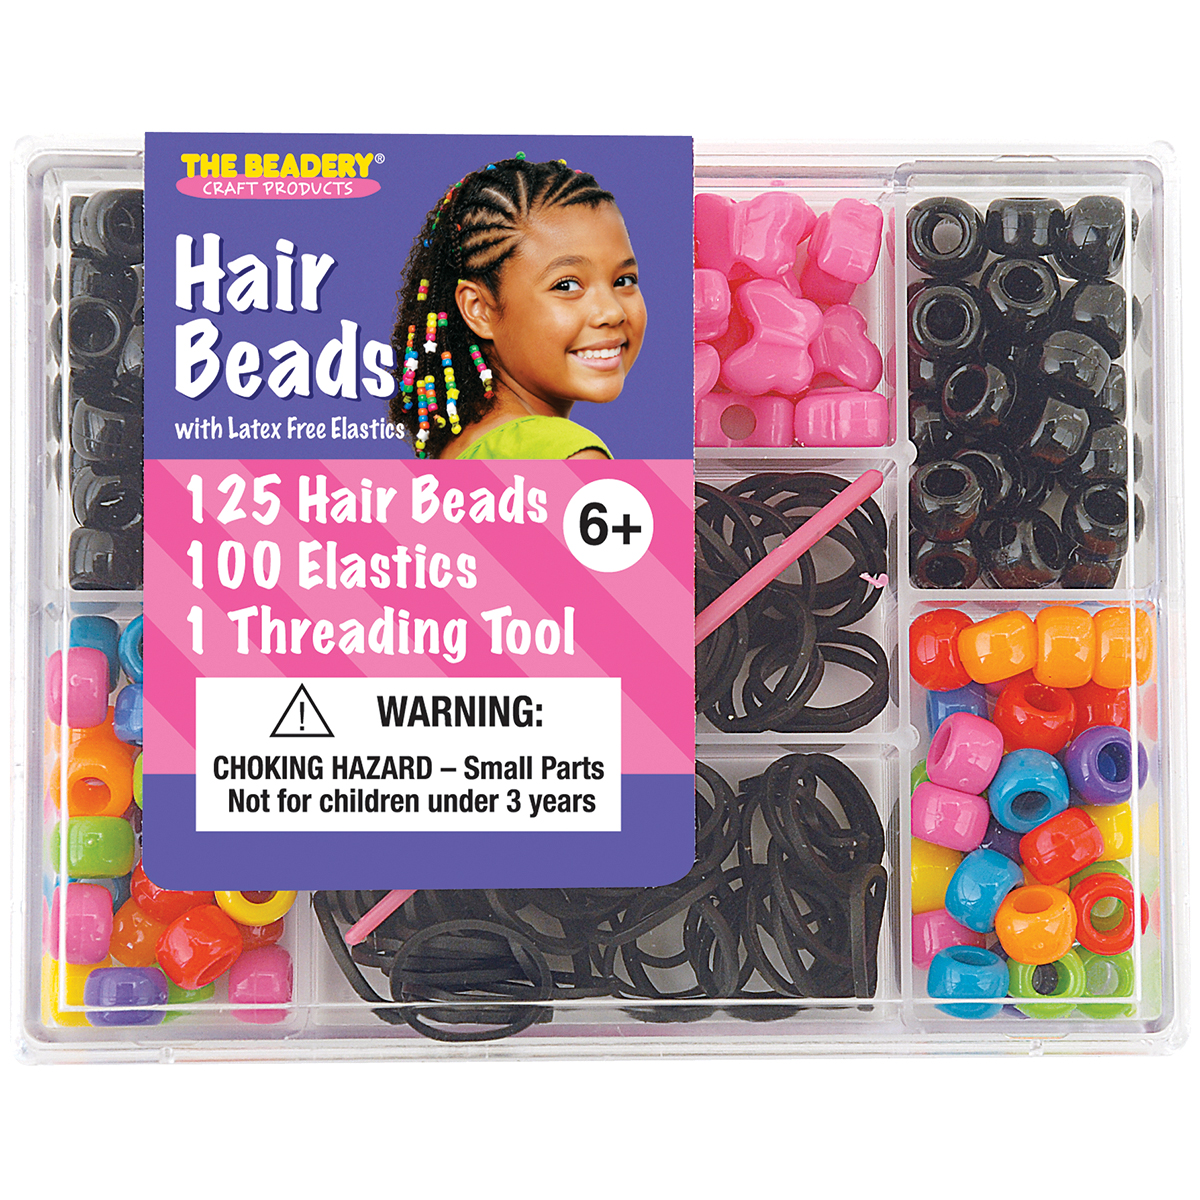 The Beadery Hair Bead Box, Bright